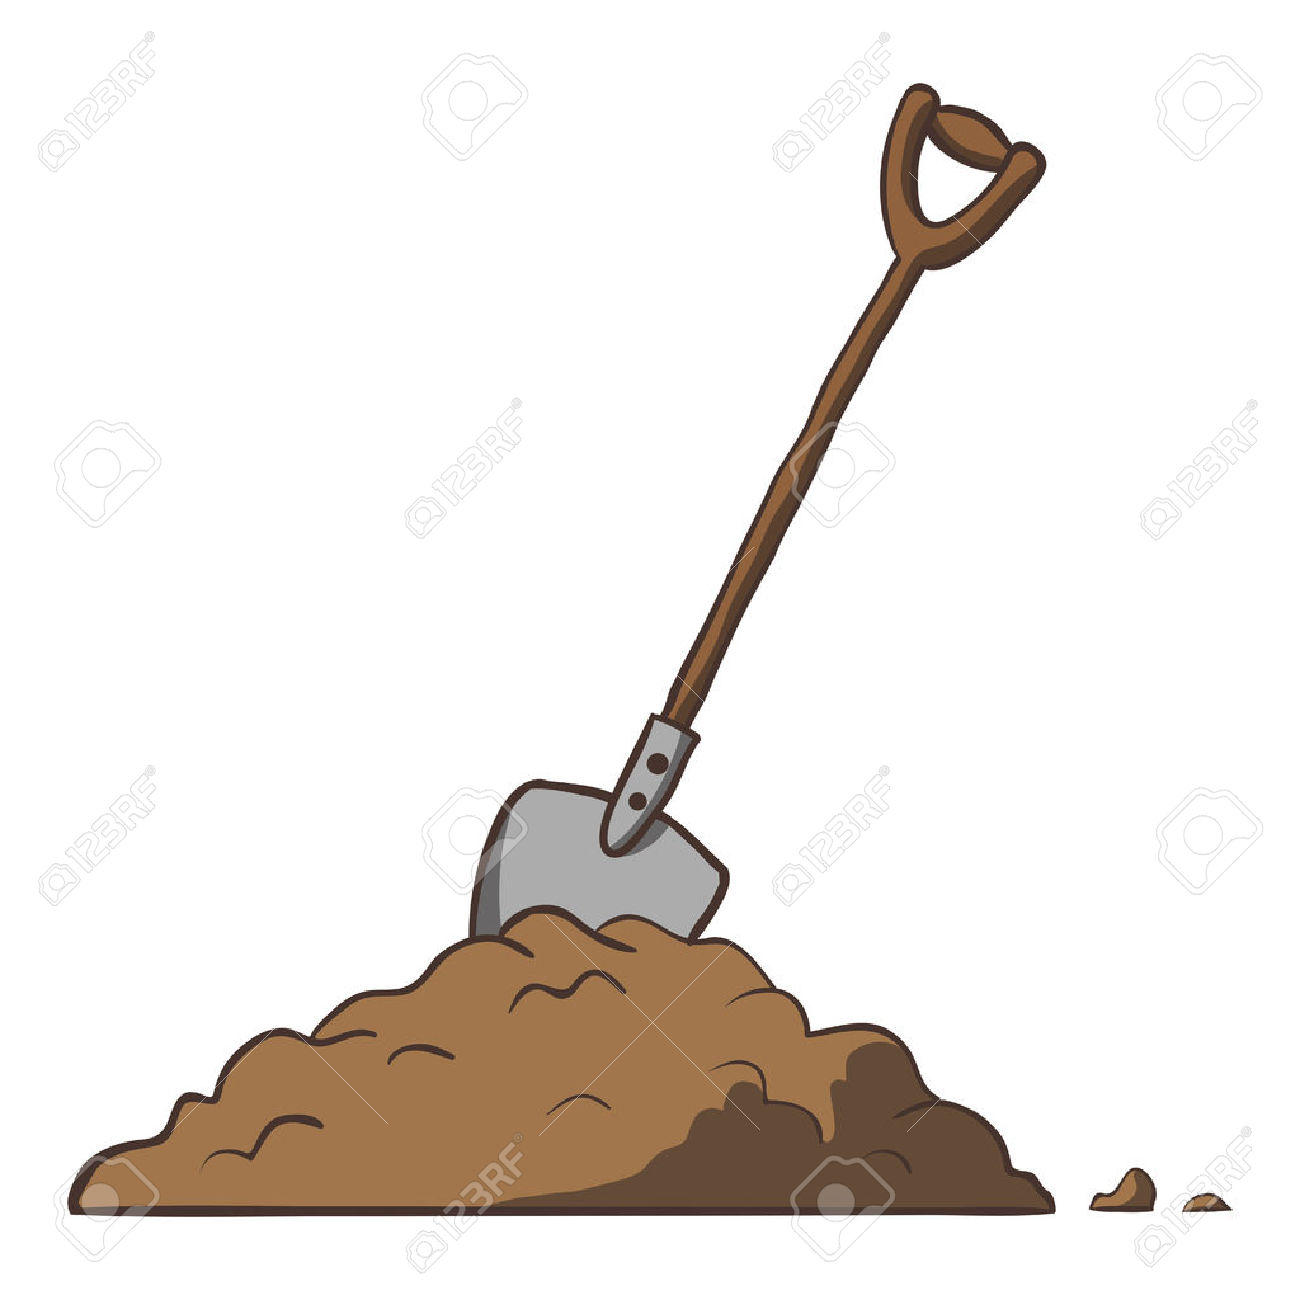 Mud clipart dirt pile #1